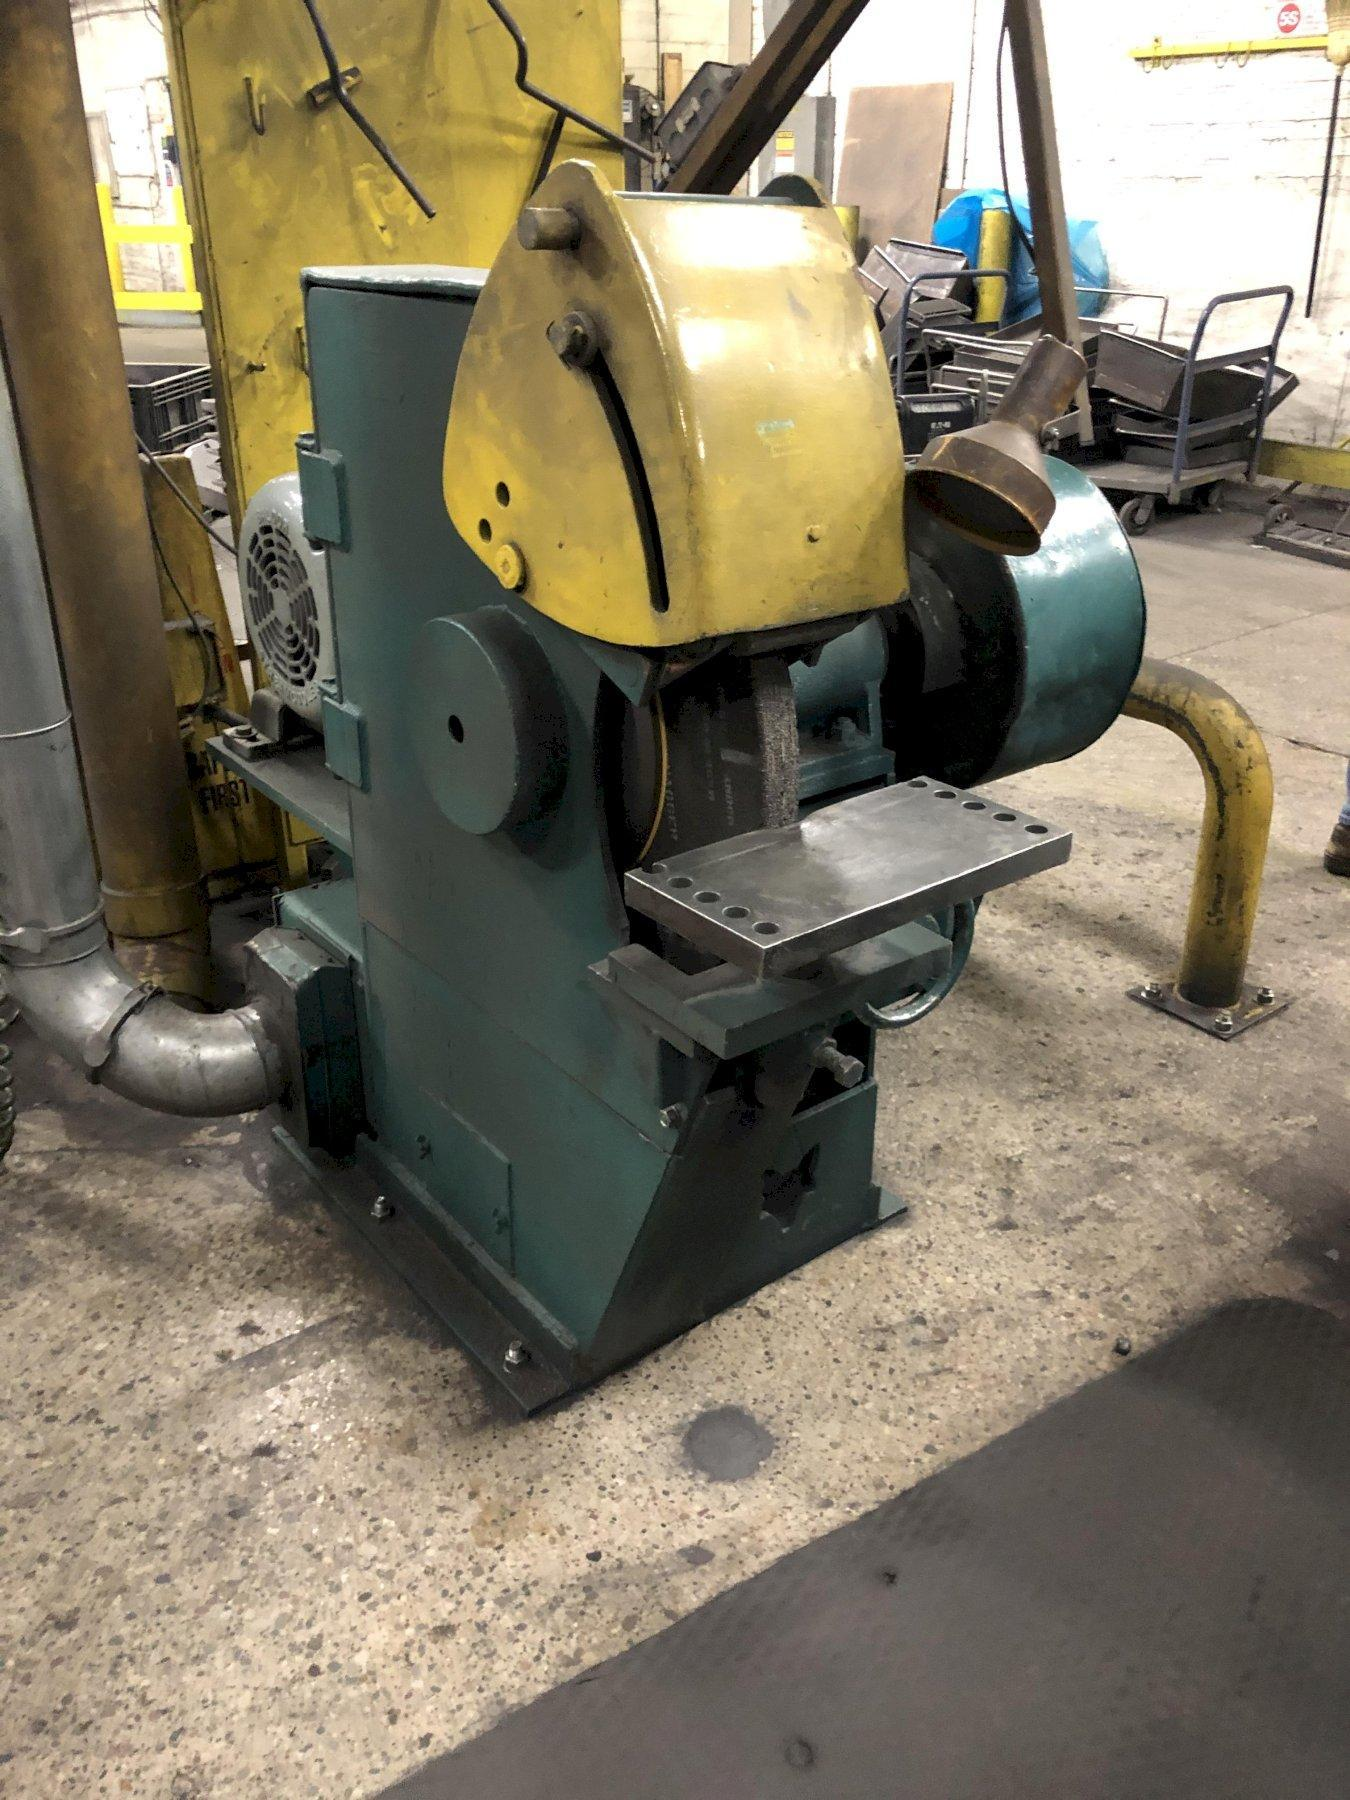 "FOX MODEL G60G 30"" LEFT HAND SINGLE END GRINDER WITH SAFETY GUARDS S/N 5764359, 25 HP"